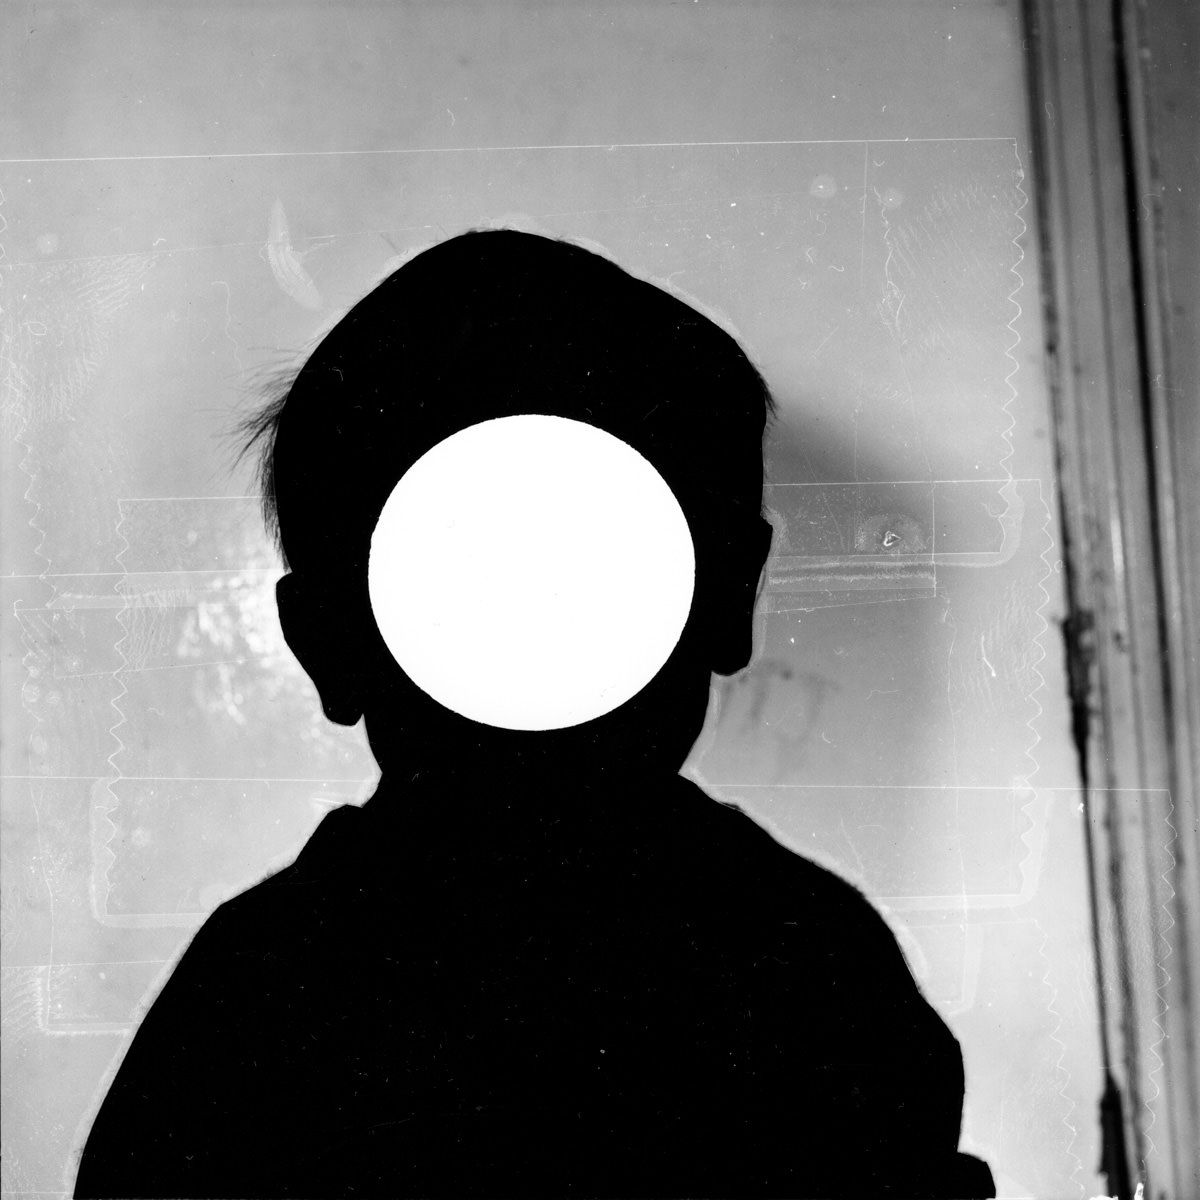 """""""0074"""" from the series The Children of Mars, by William Mokrynski"""